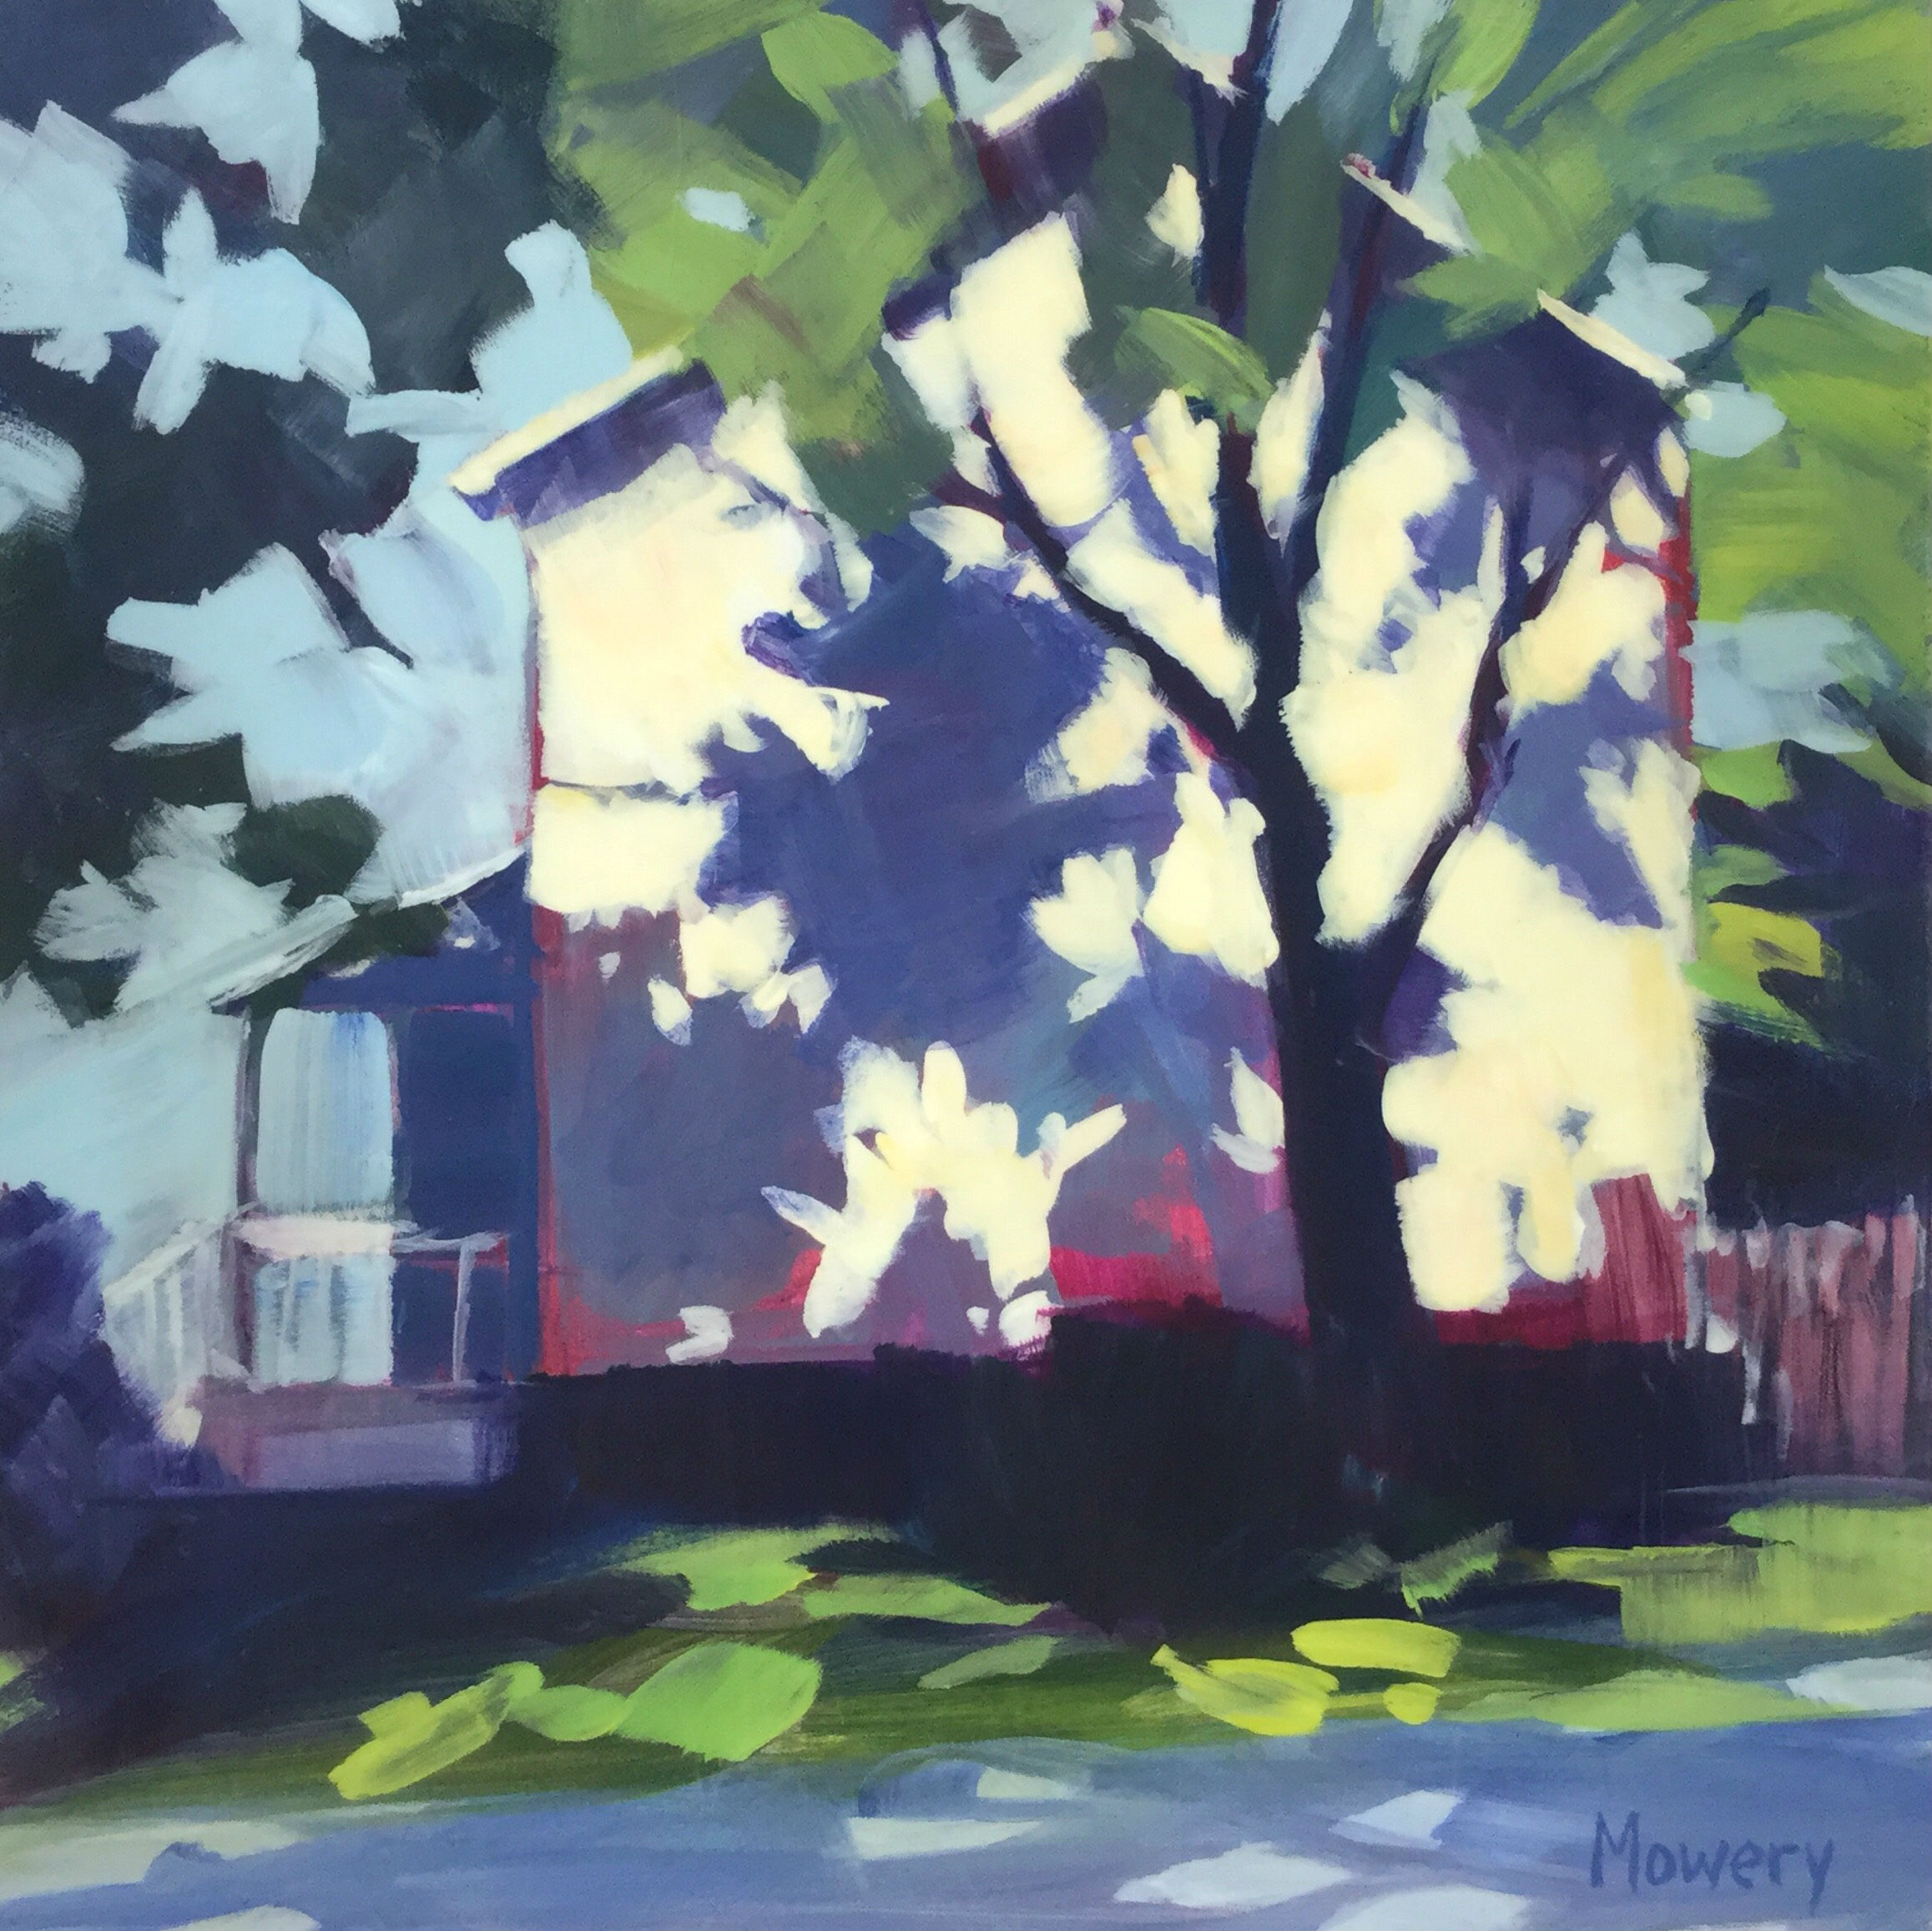 This is an acrylic painting of tree shadows on the side of a suburban house by artist Barb Mowery.